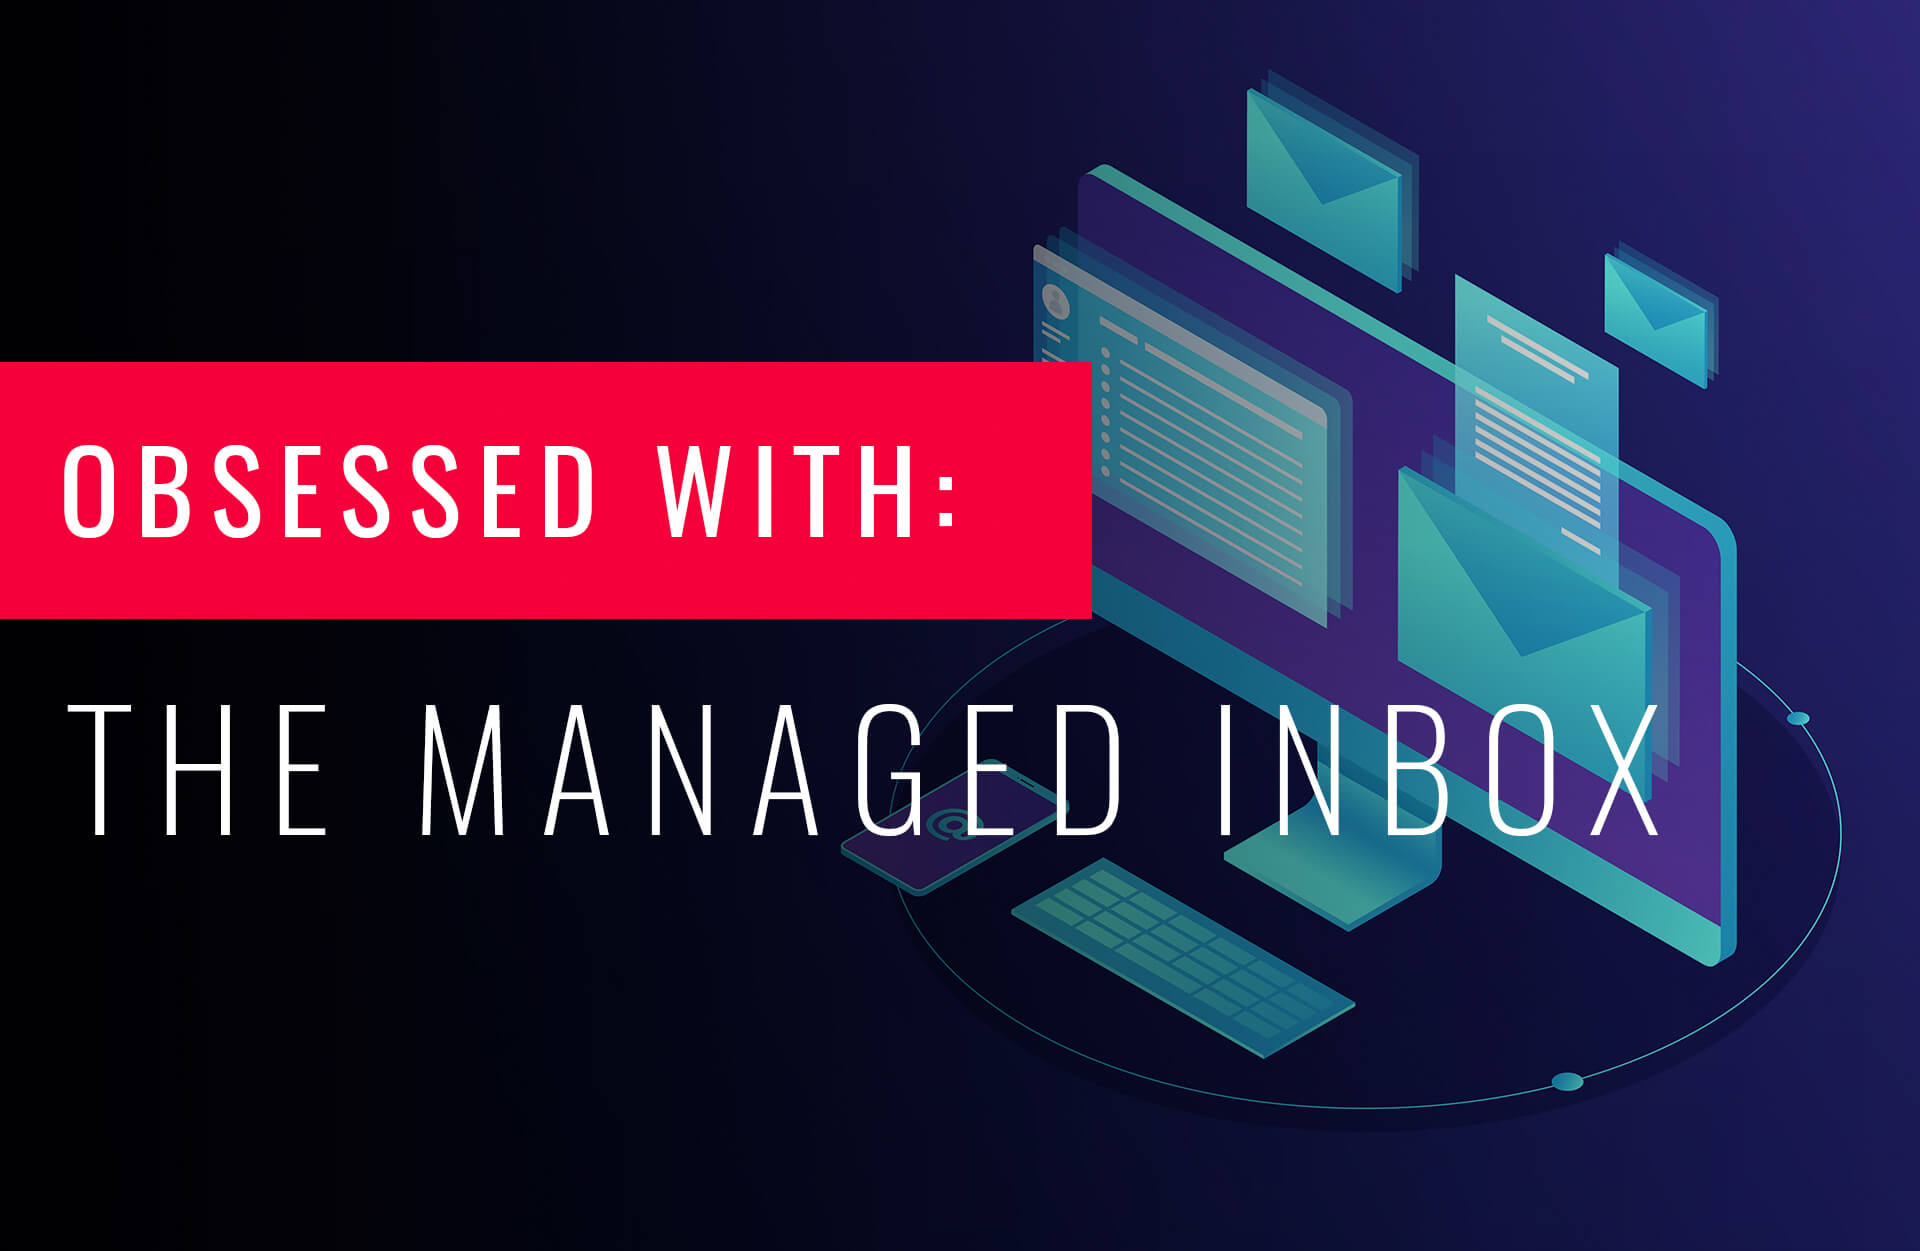 SparkPost updates email validation services to improve deliverability rates